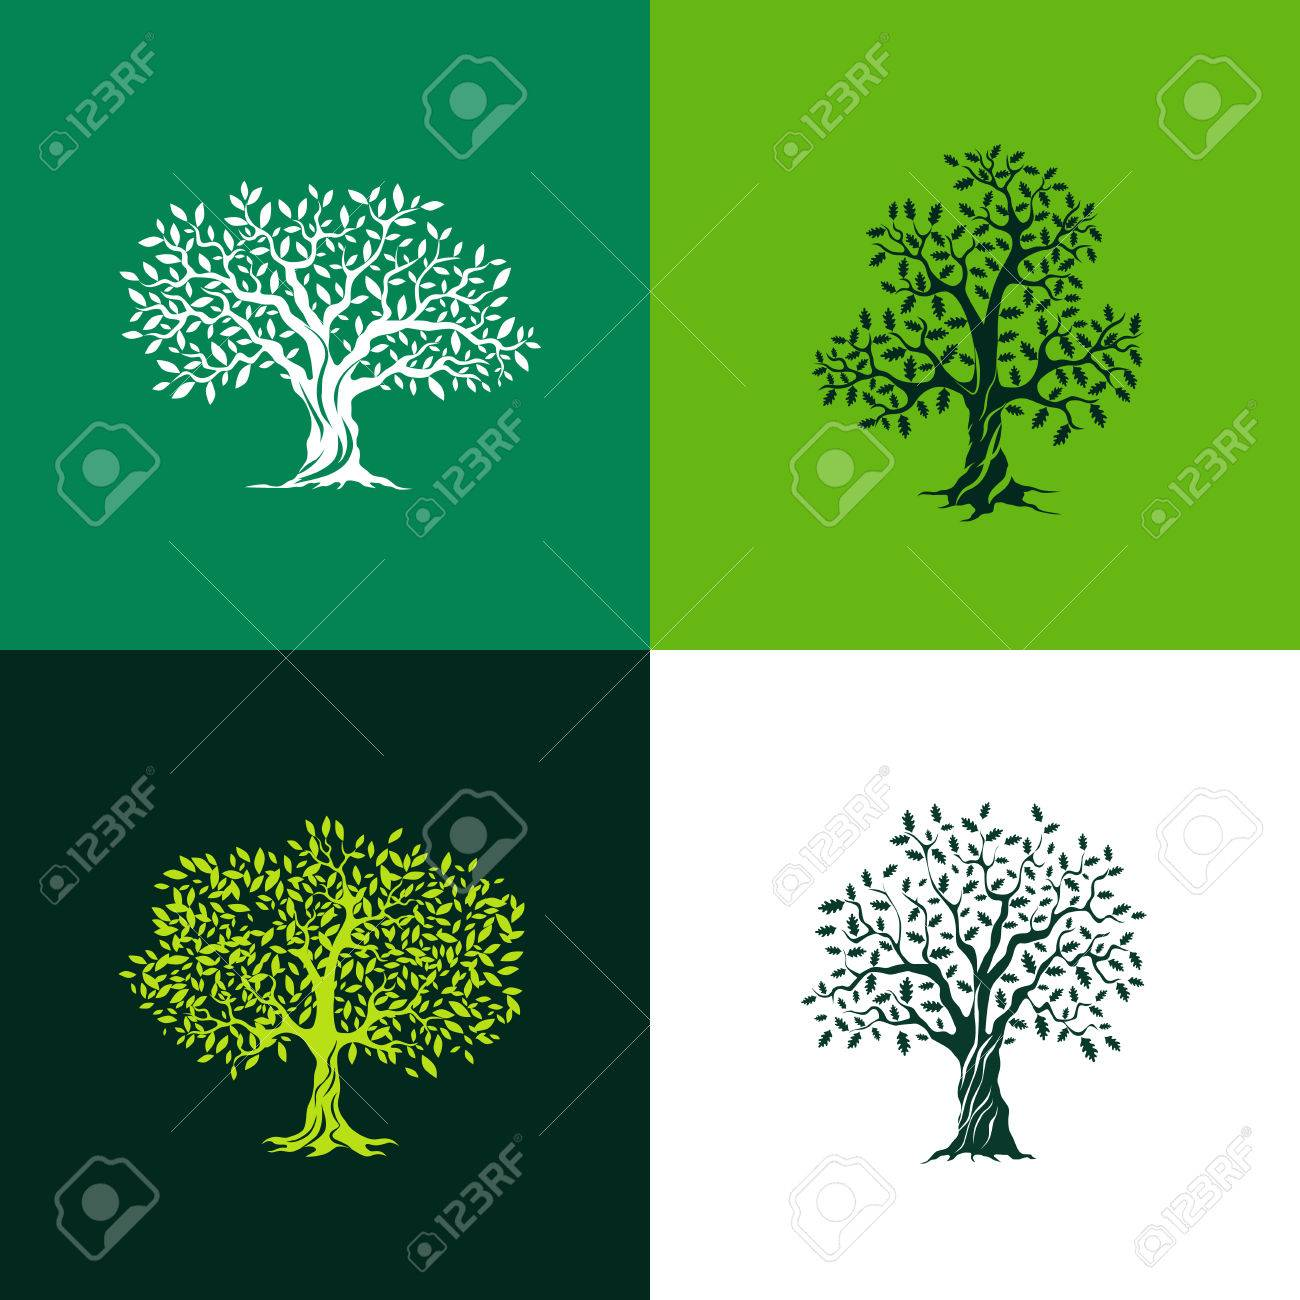 Beautiful oak and olive trees silhouette set on green background. Infographic modern isolated vector sign. Premium quality illustration logo design concept. - 53302738